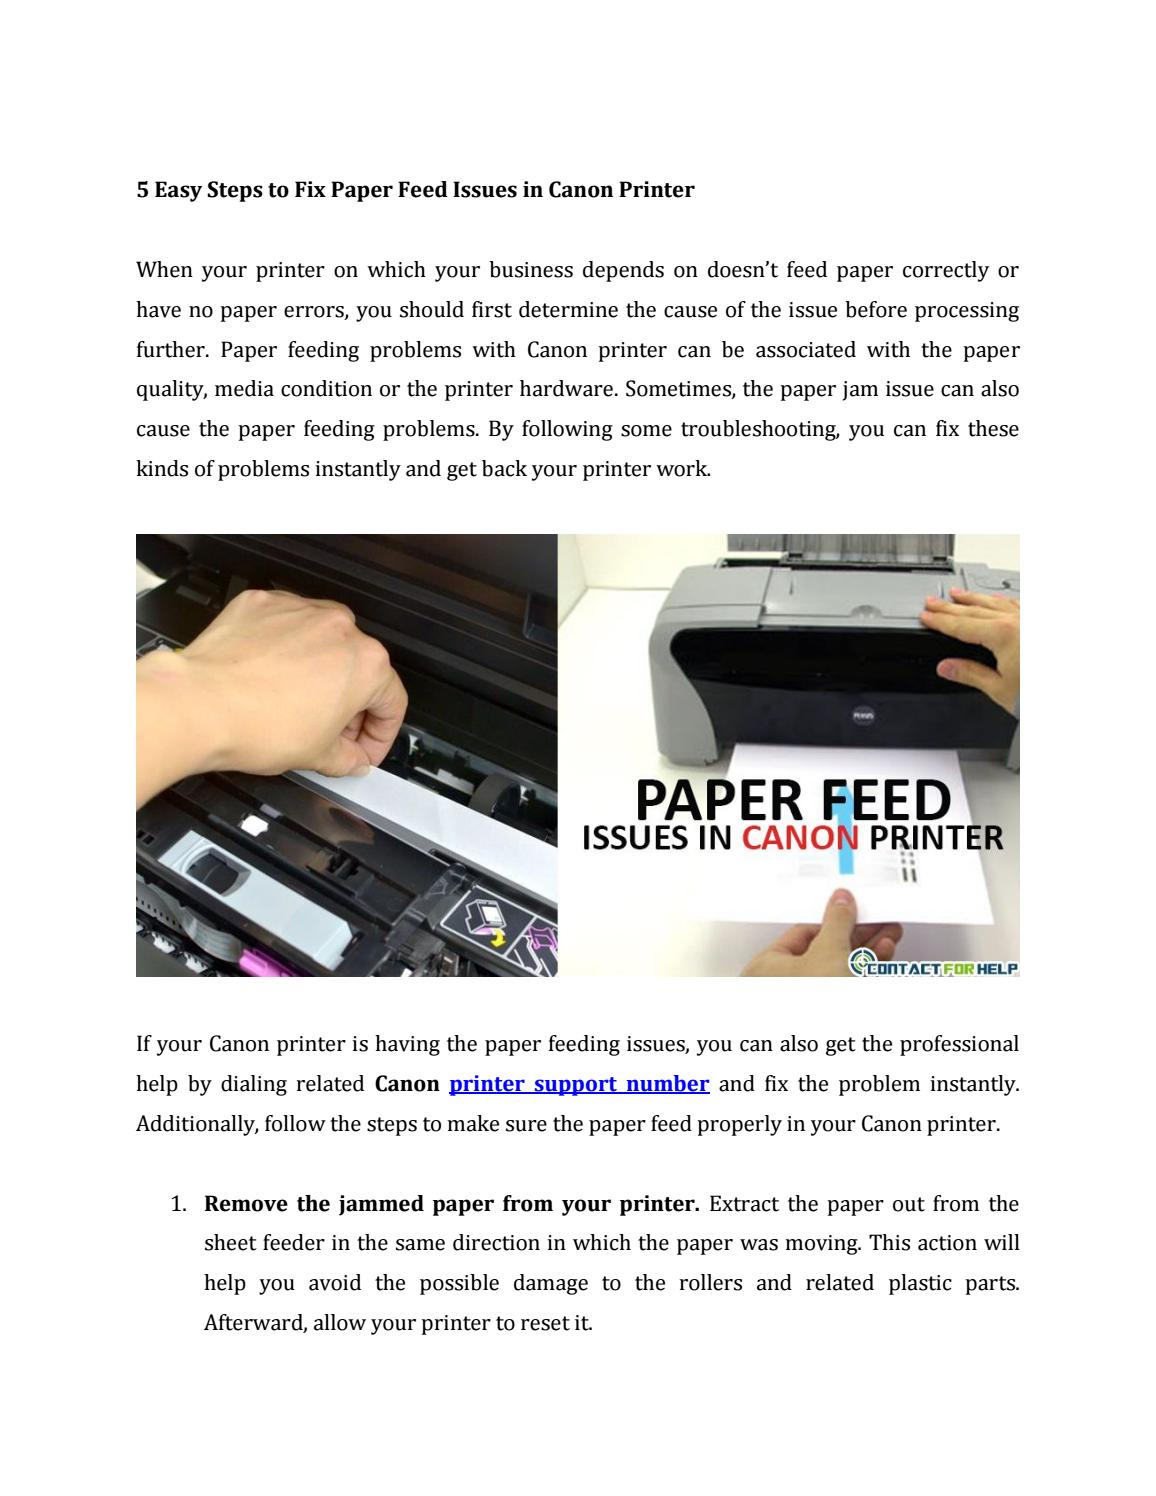 Fix Paper Feed Issues in Canon Printer by contactforhelp - issuu